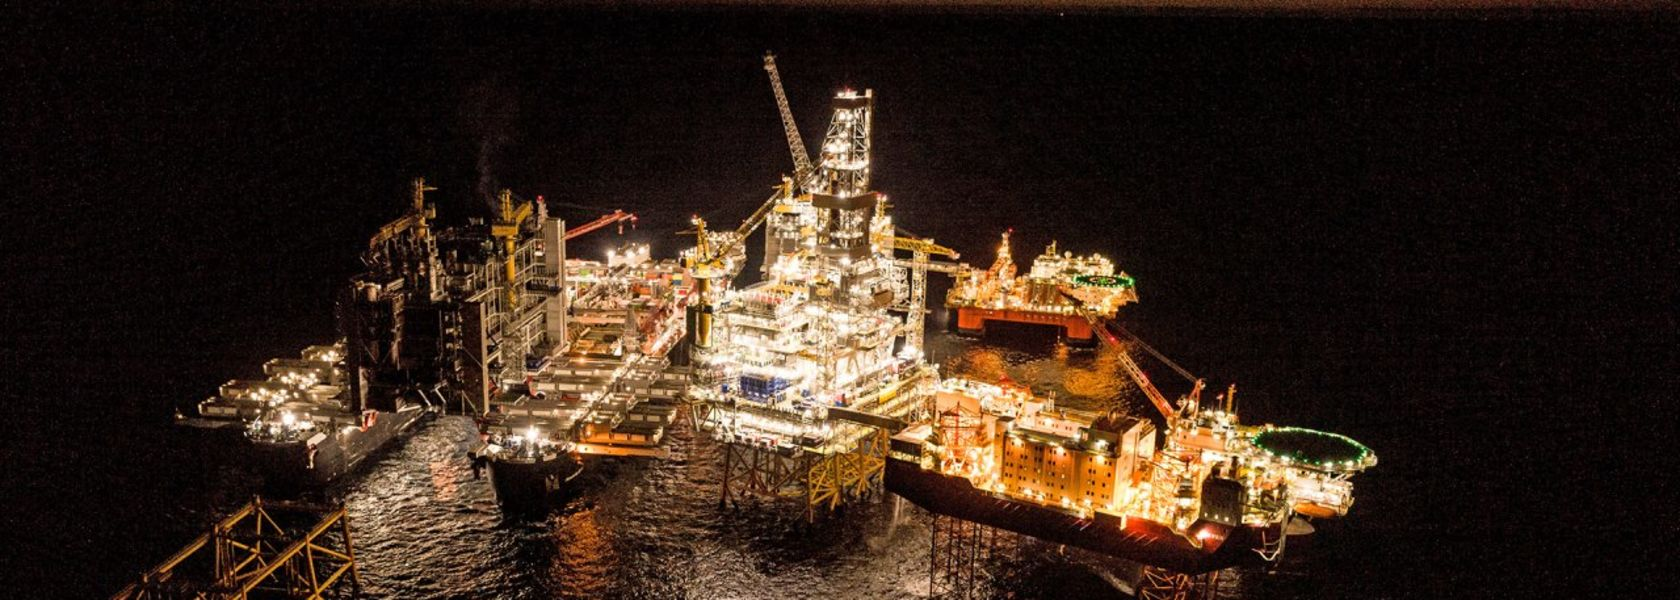 Equinor completes heaviest lift ever at Johan Sverdrup field